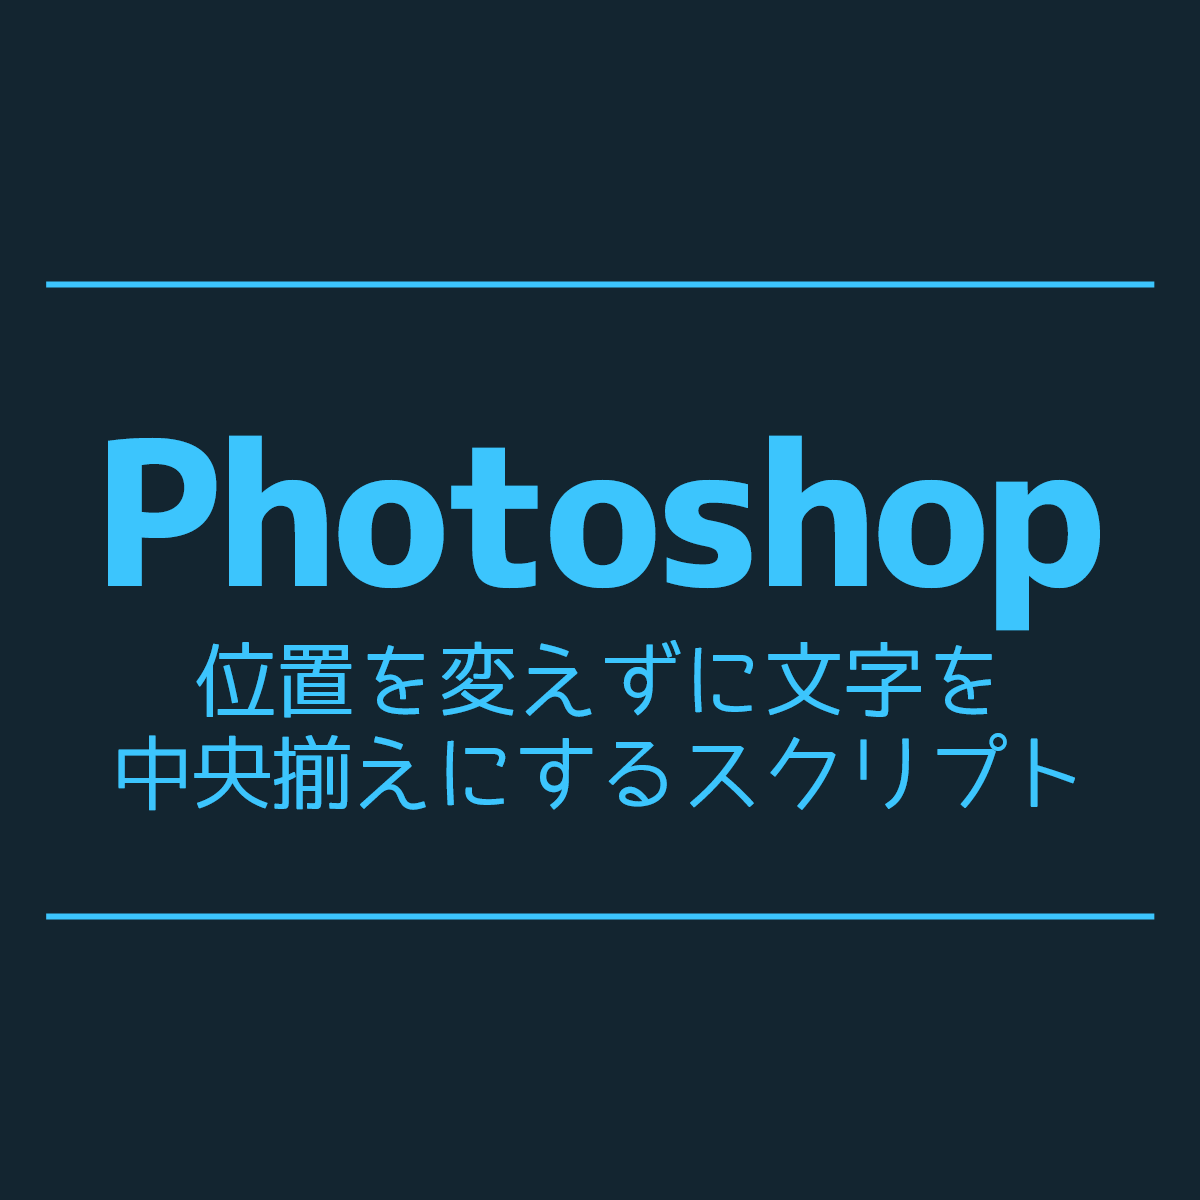 photoshop-center-text-without-changing-position